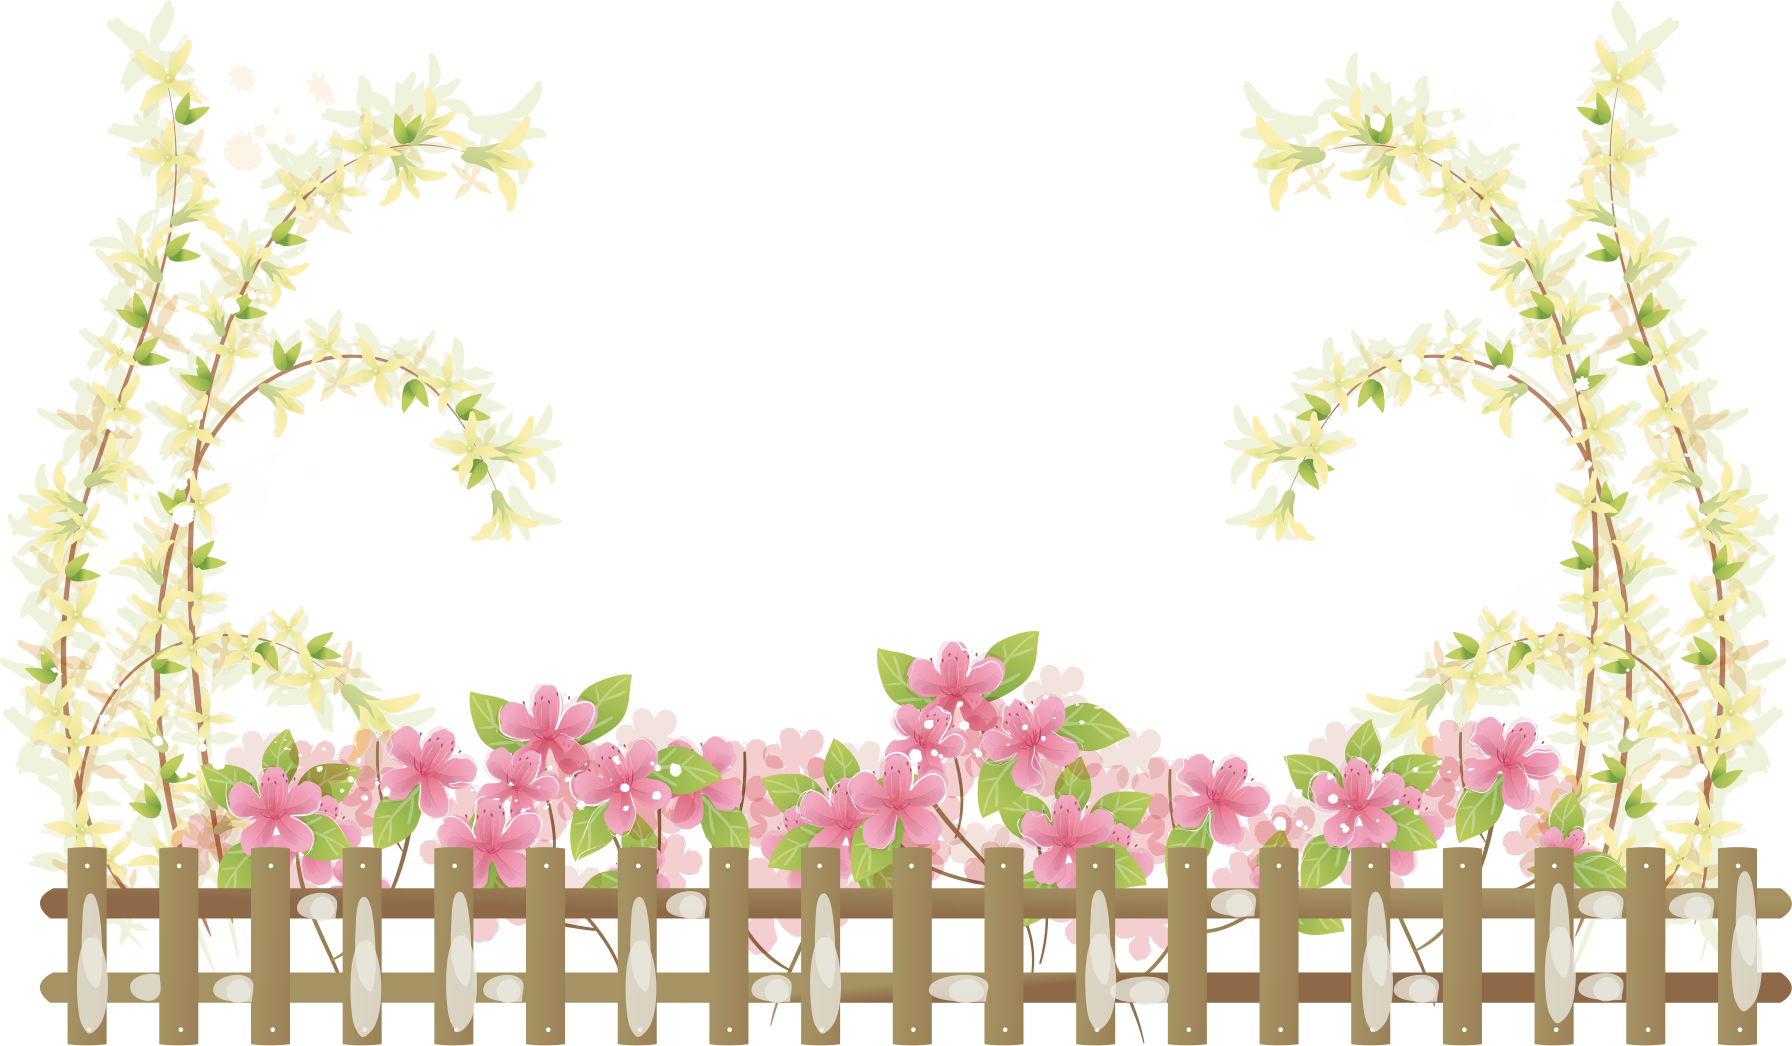 Fencing clipart painting fence. Chain link wire garden